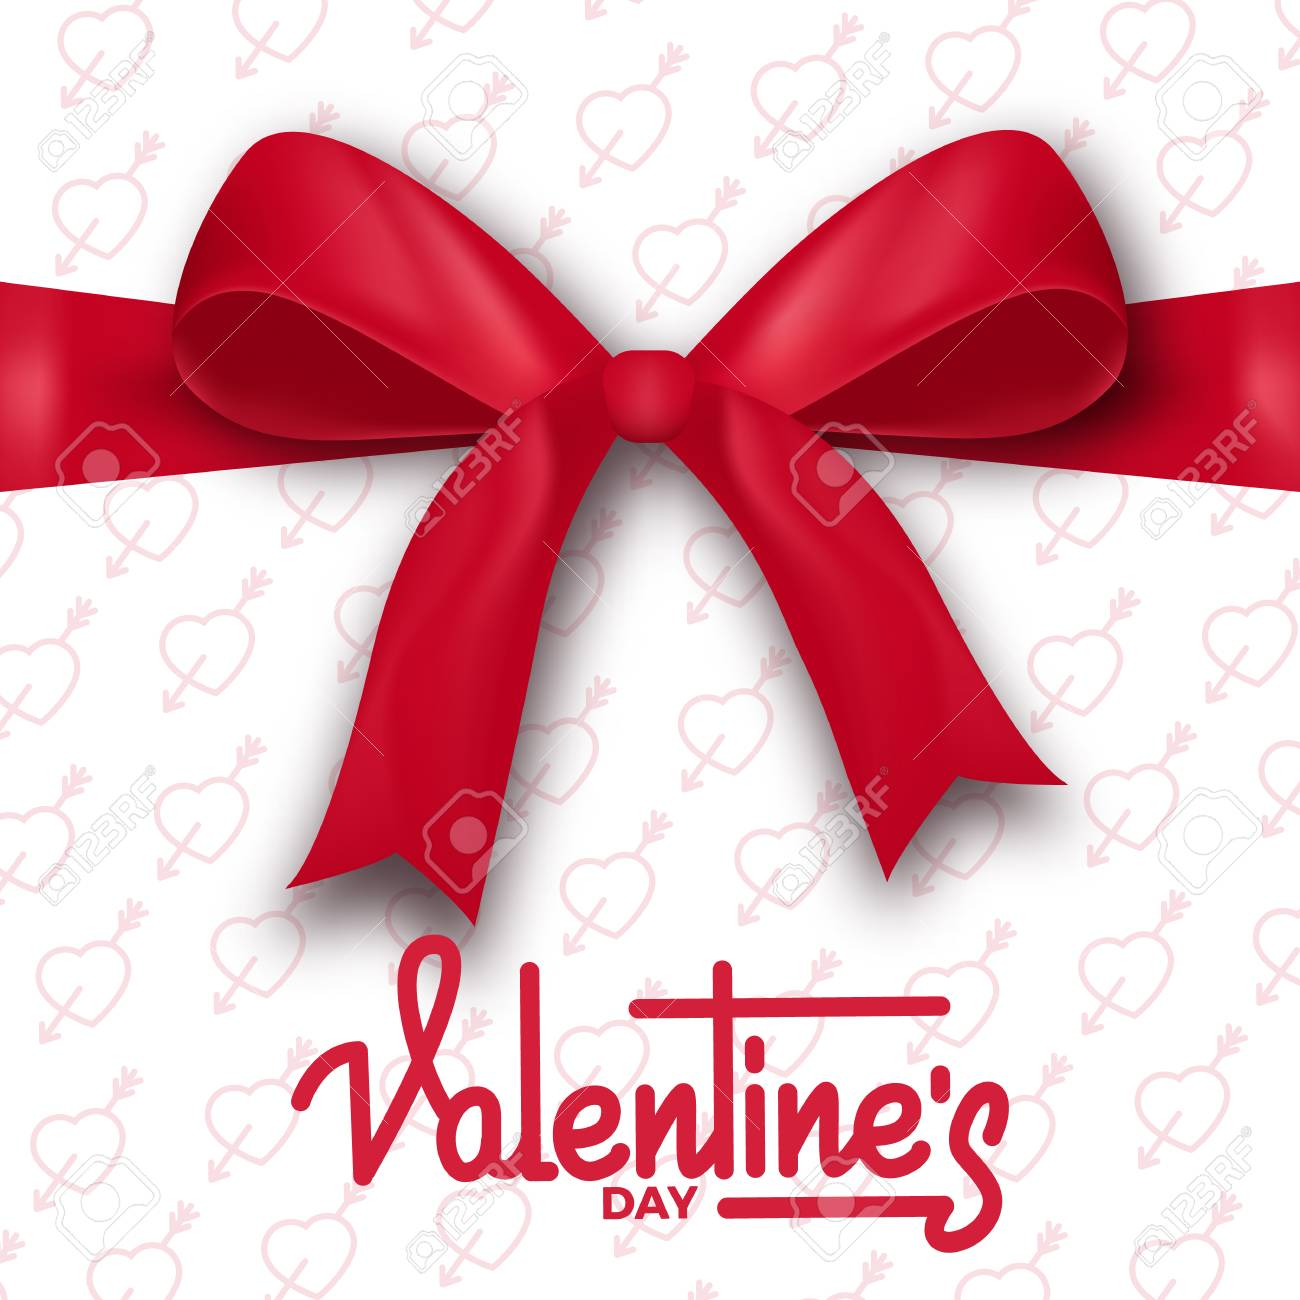 Valentines Day Valentines Day Card With Script Lettering And